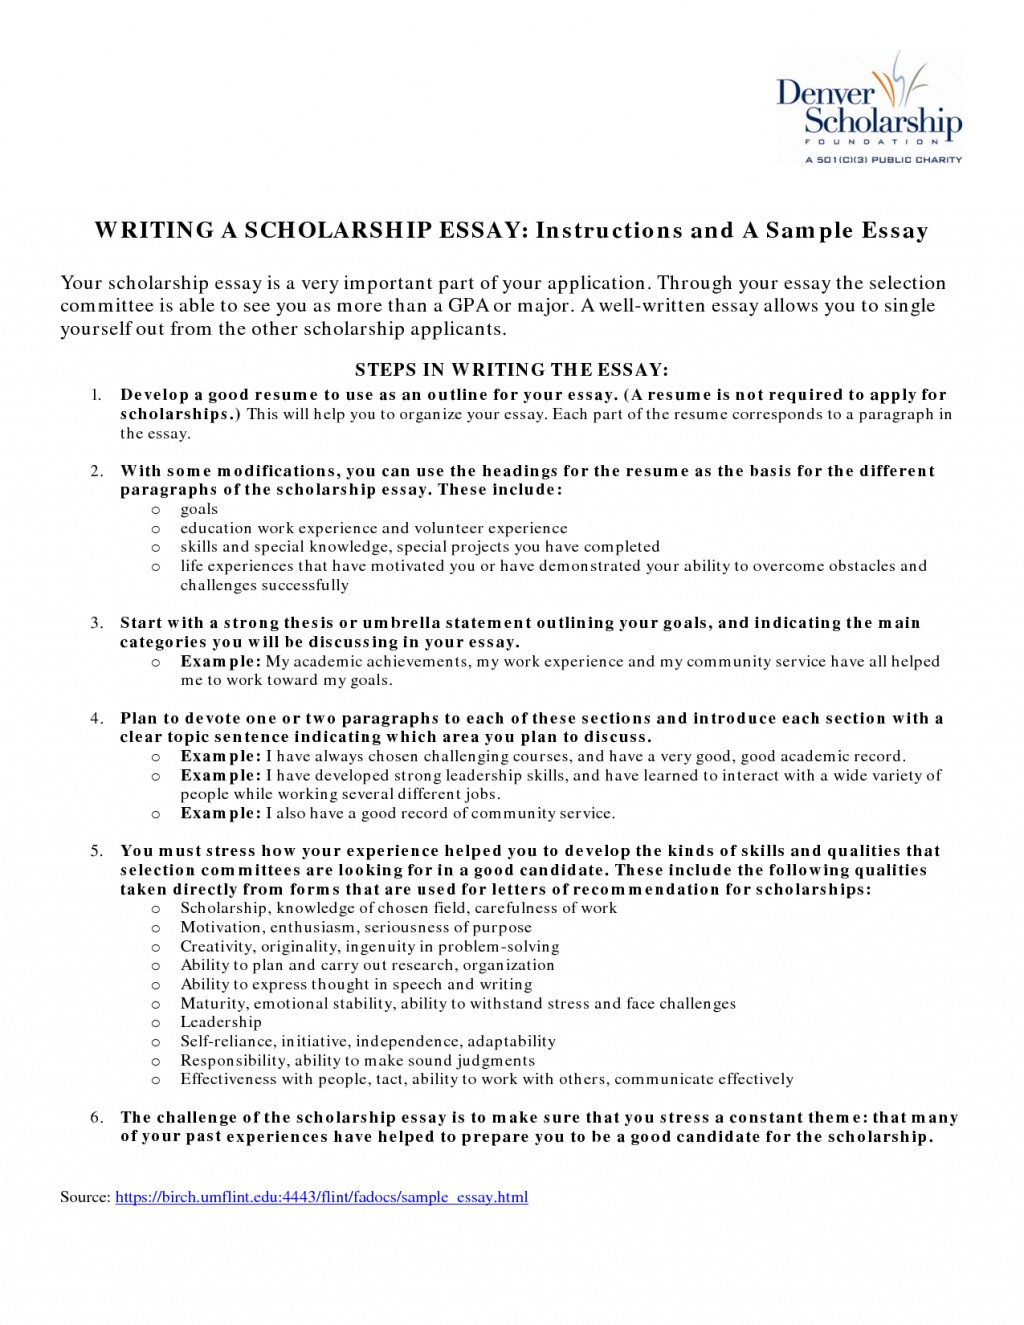 Conservation essay water